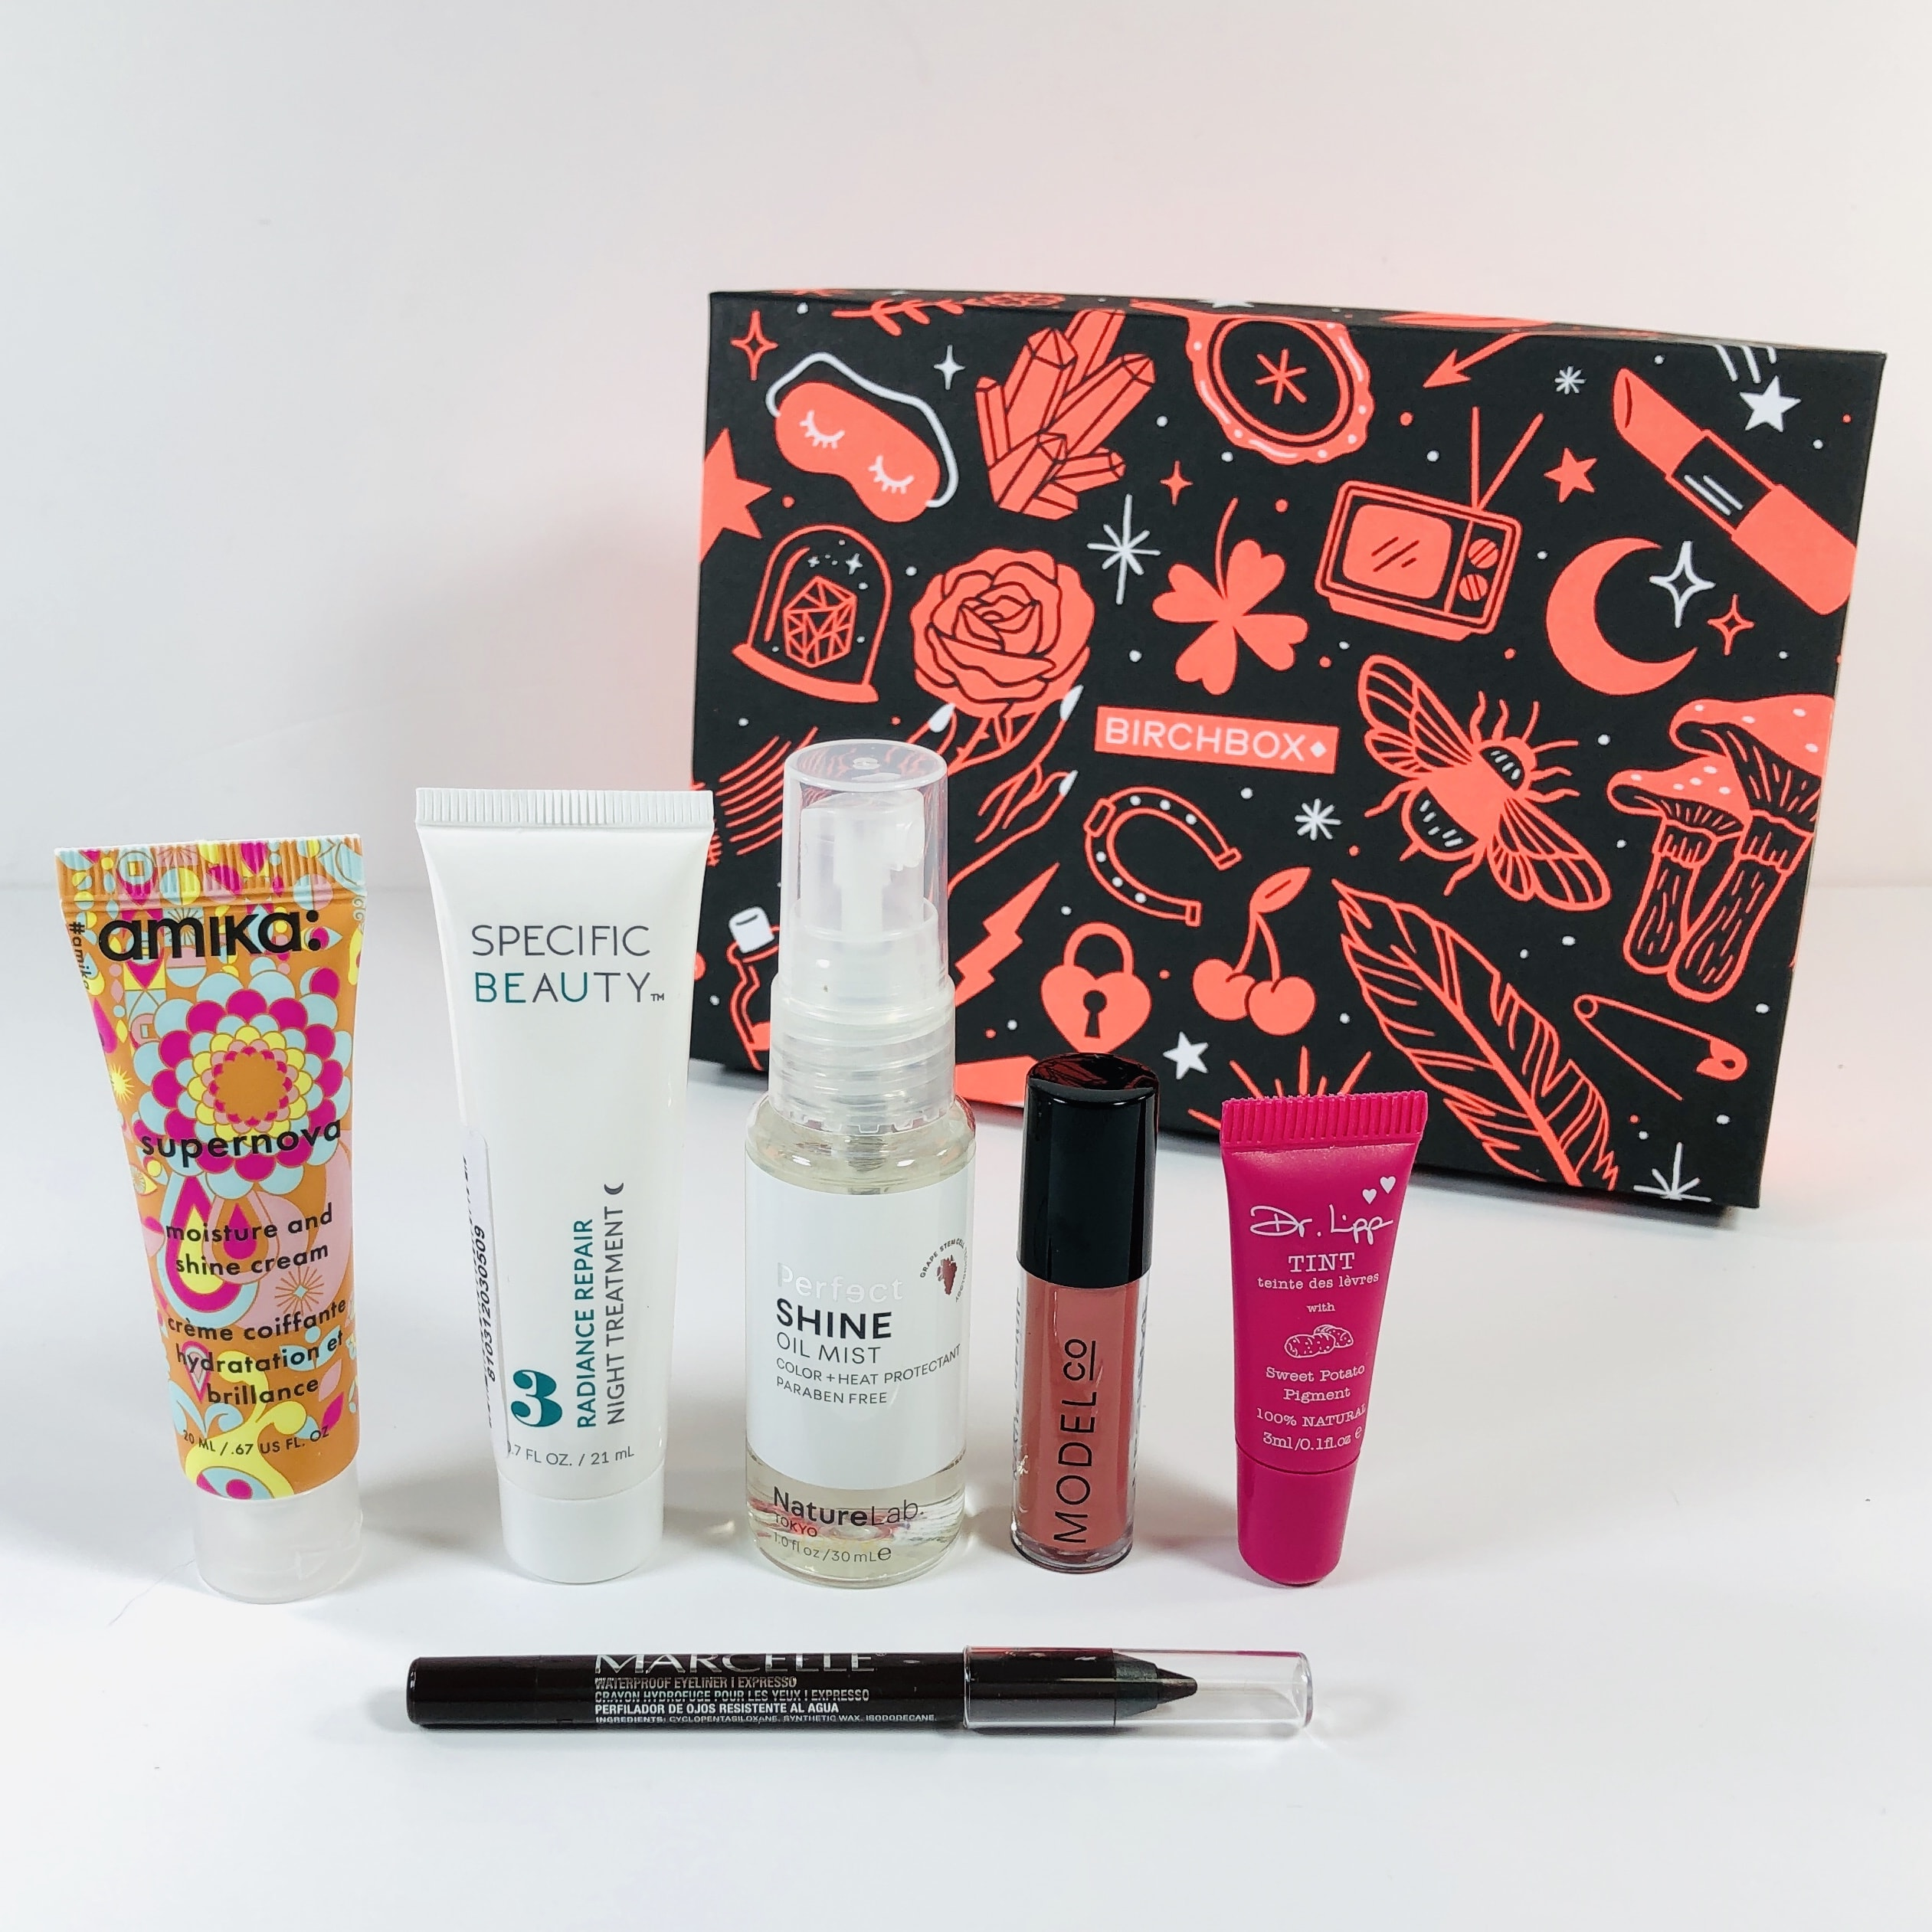 Birchbox October 2019 Subscription Box Review + Coupon – Curated Box